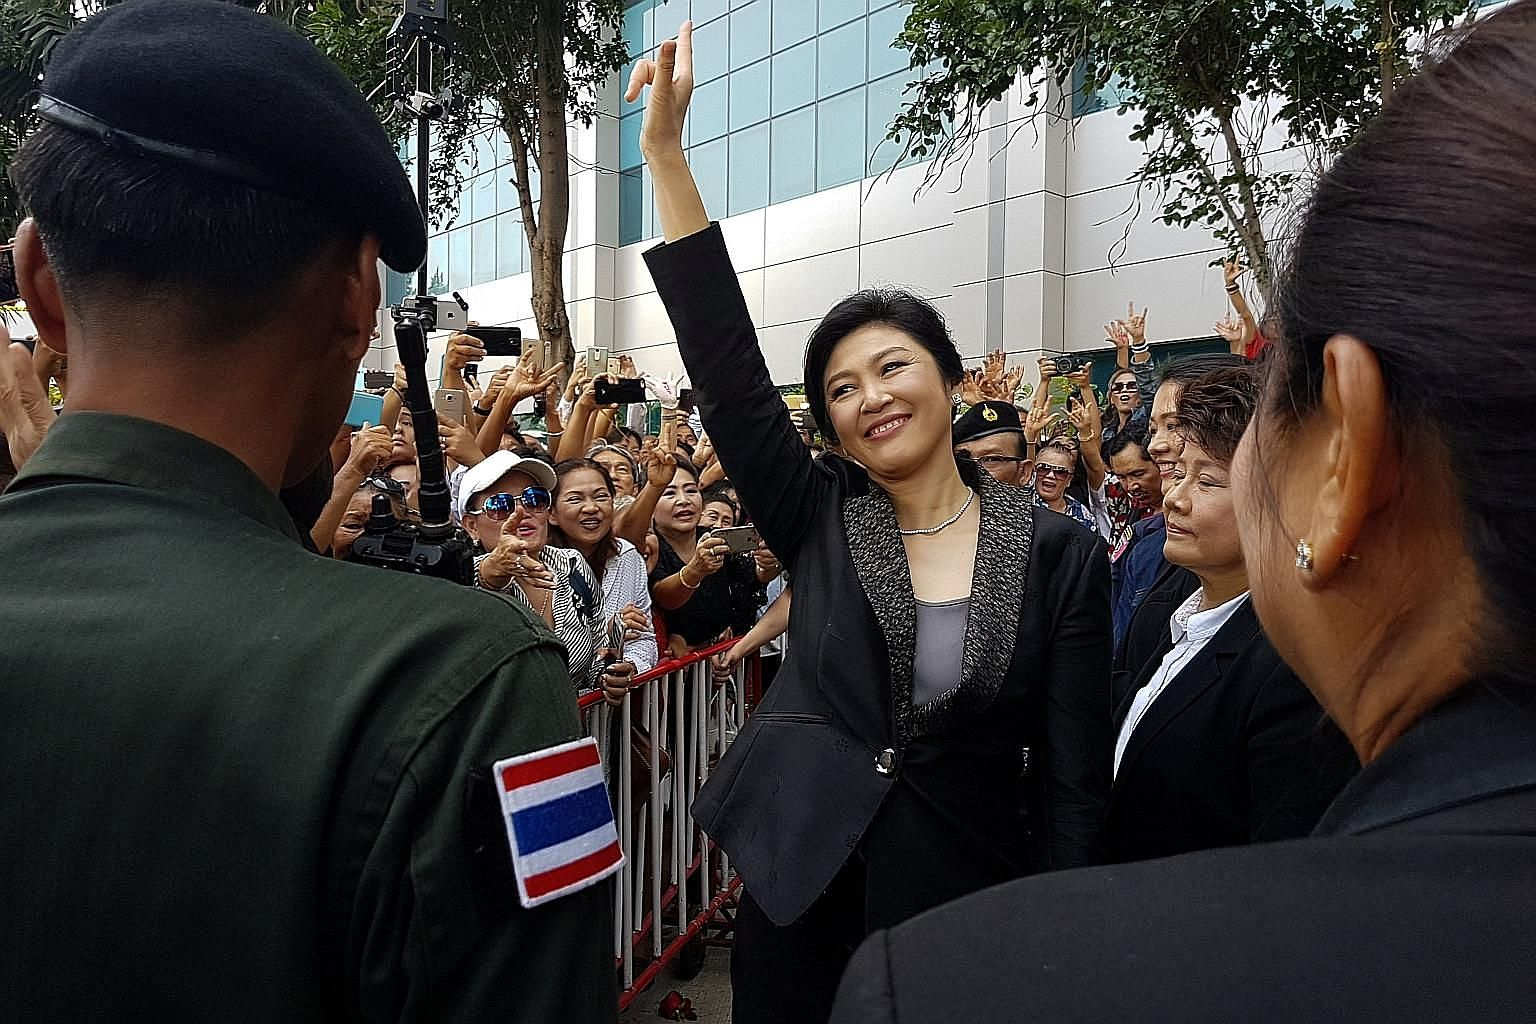 Ousted Thai prime minister Yingluck Shinawatra greeting supporters on leaving the Supreme Court in Bangkok yesterday.